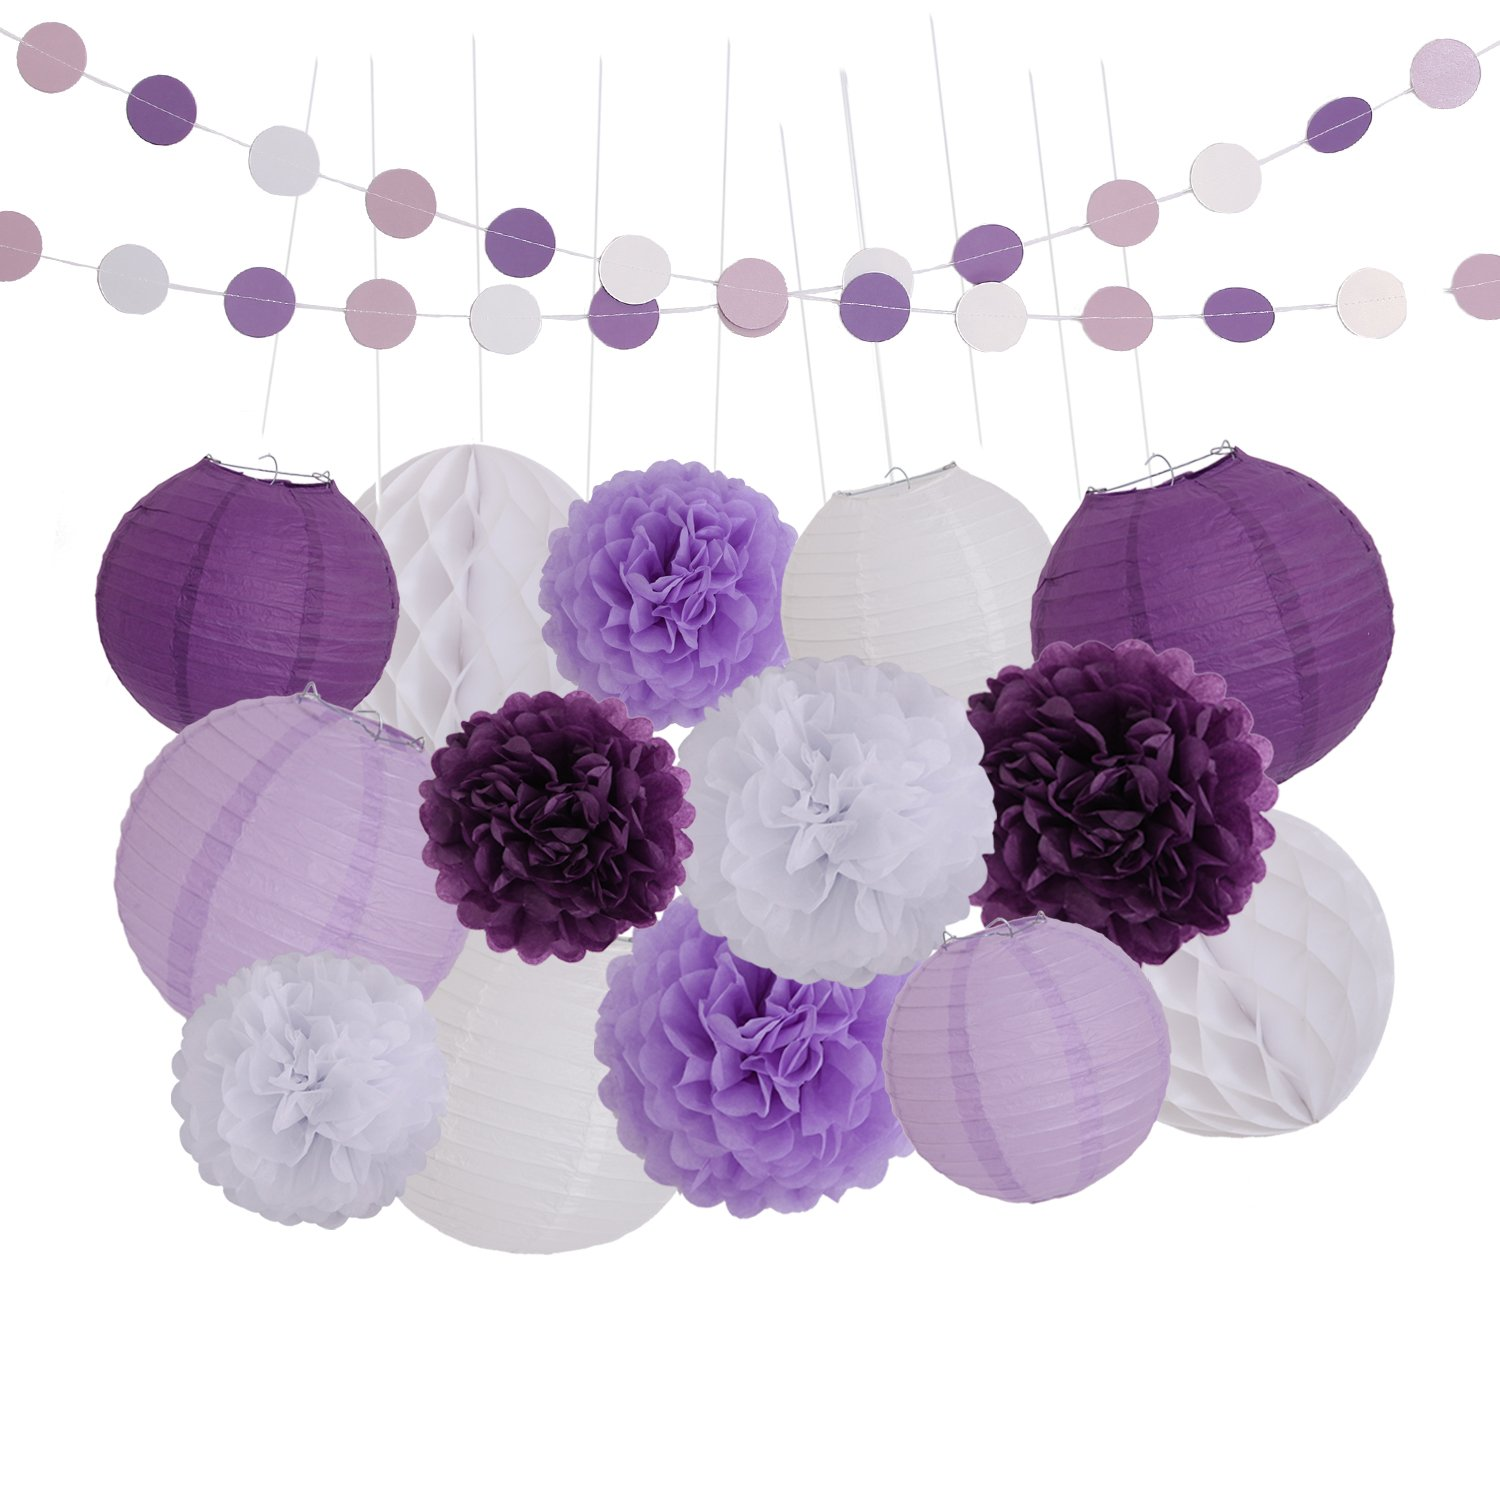 9f4be7baa2d LyButty 16 Pcs Dark Purple Lavender White Tissue Paper Pom Poms Flowers  Tissue Paper Lanterns Honeycomb